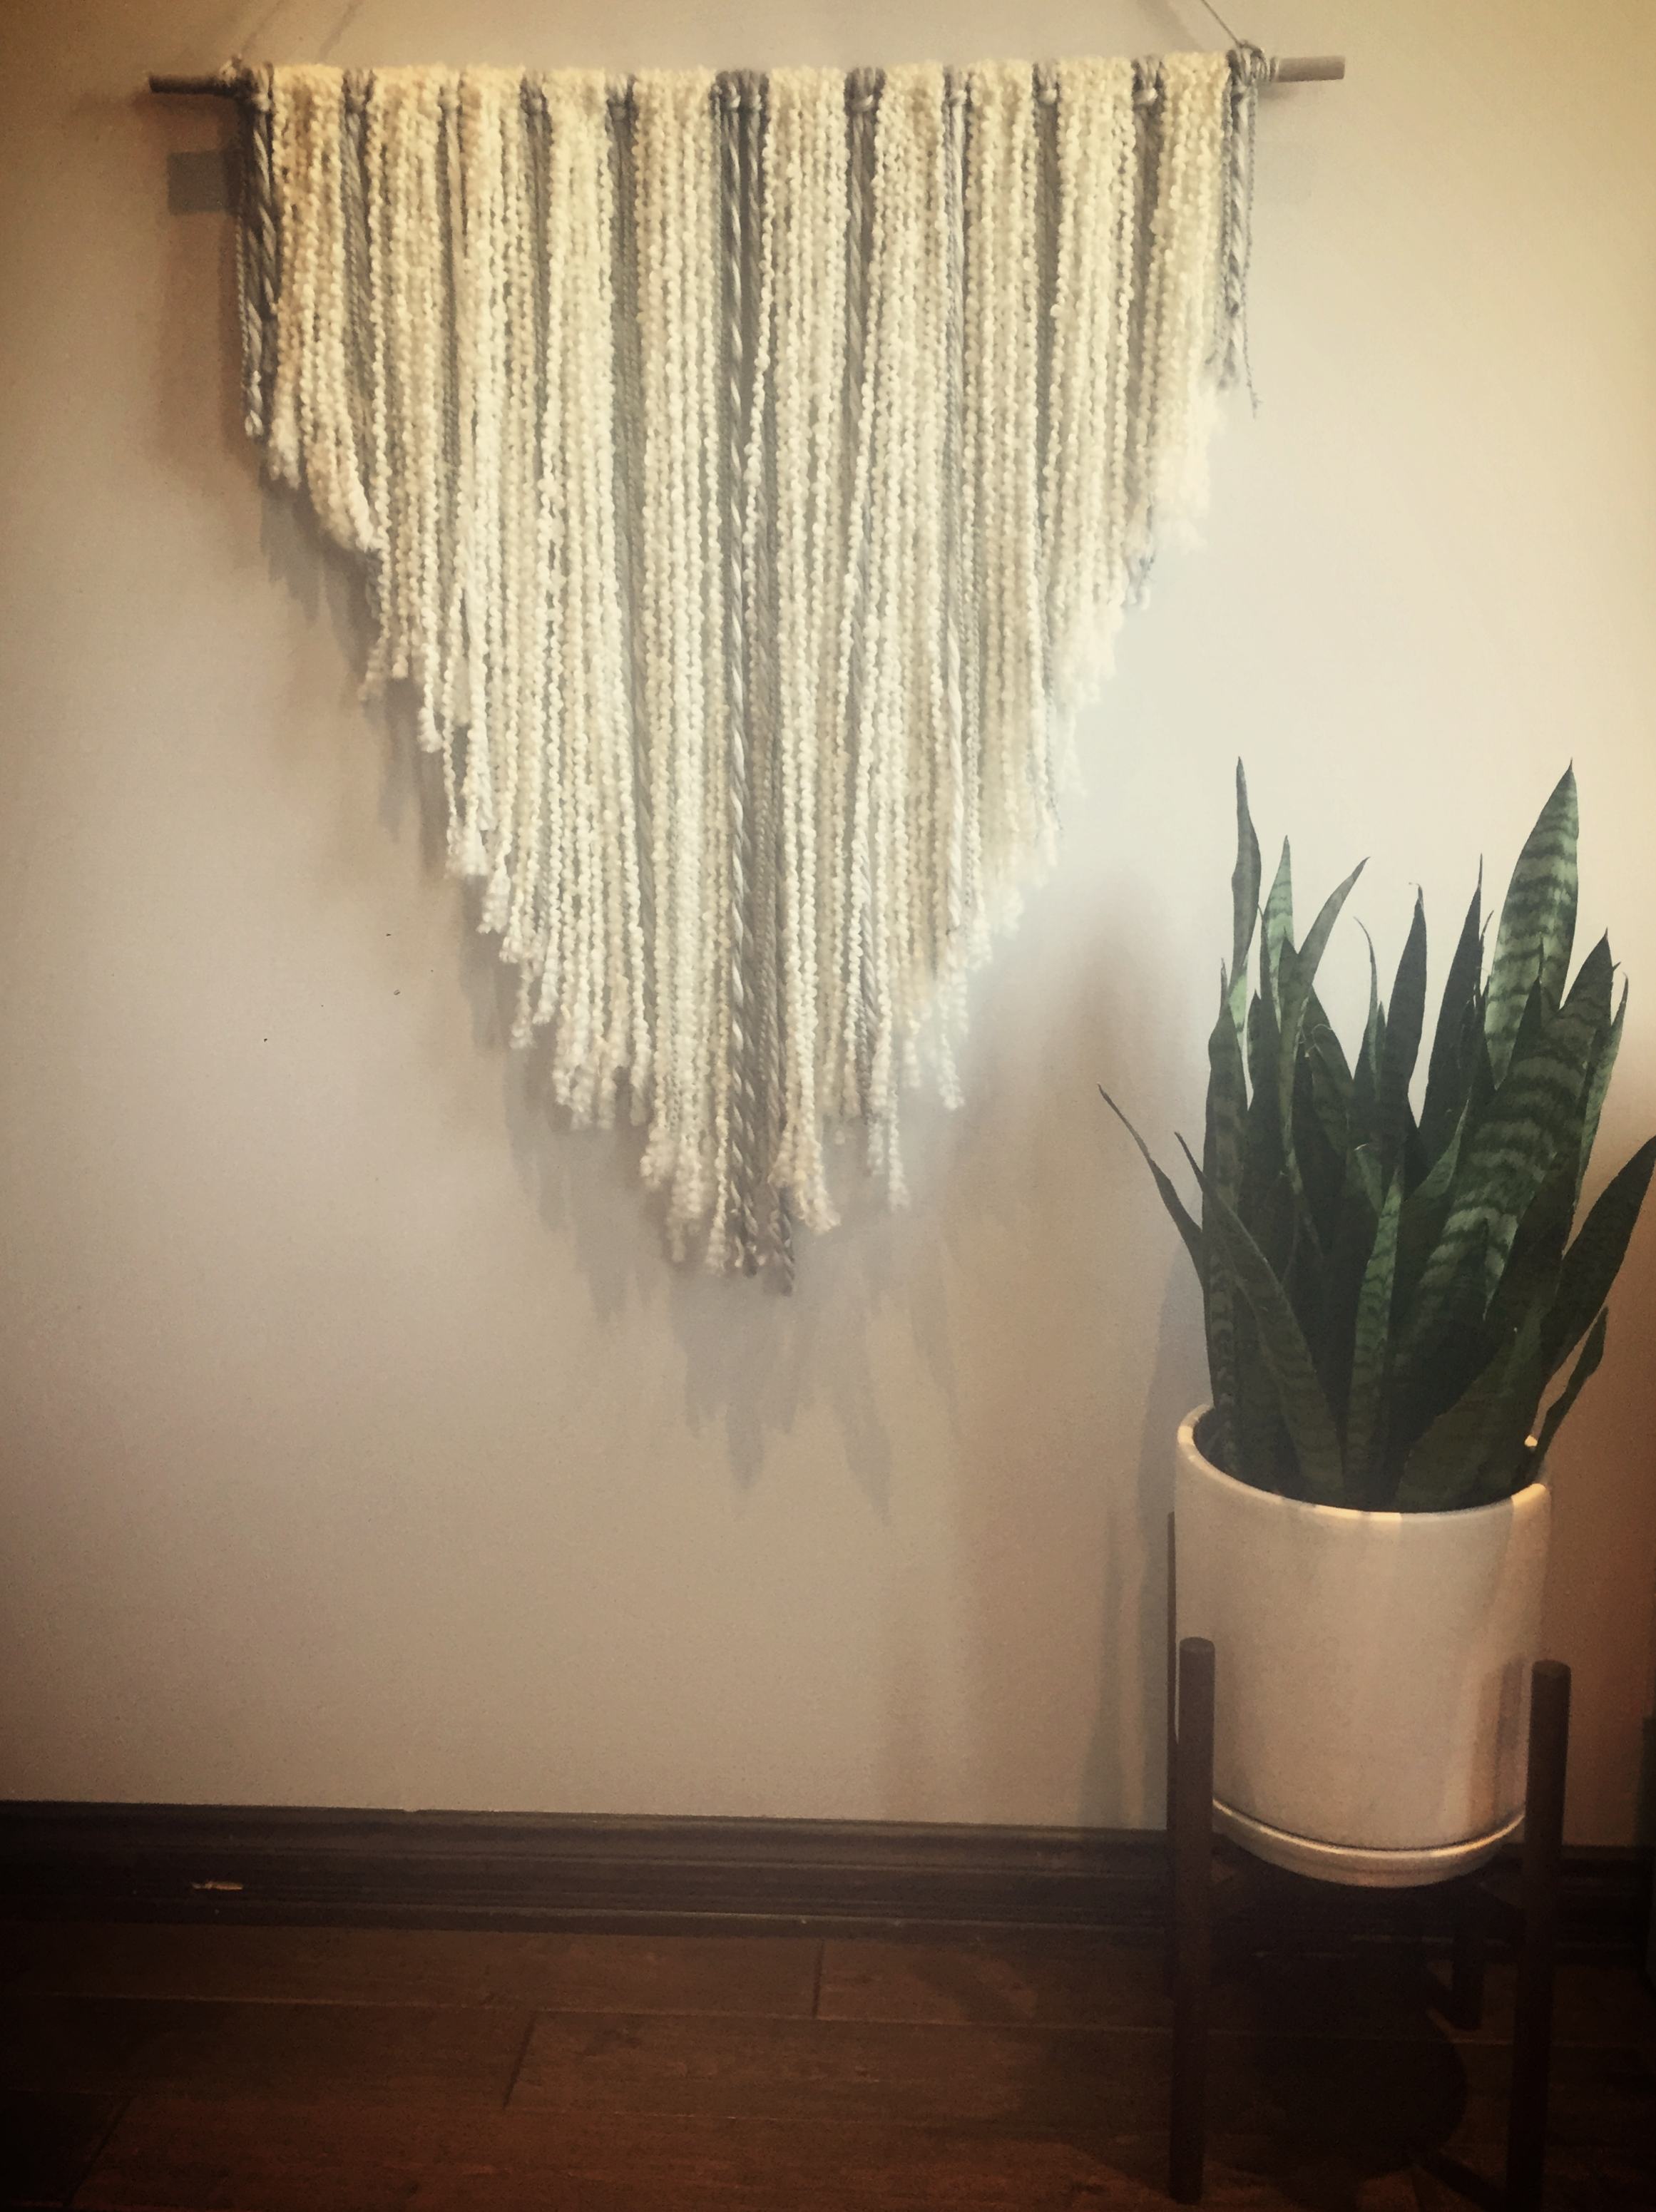 wall and plant.JPG